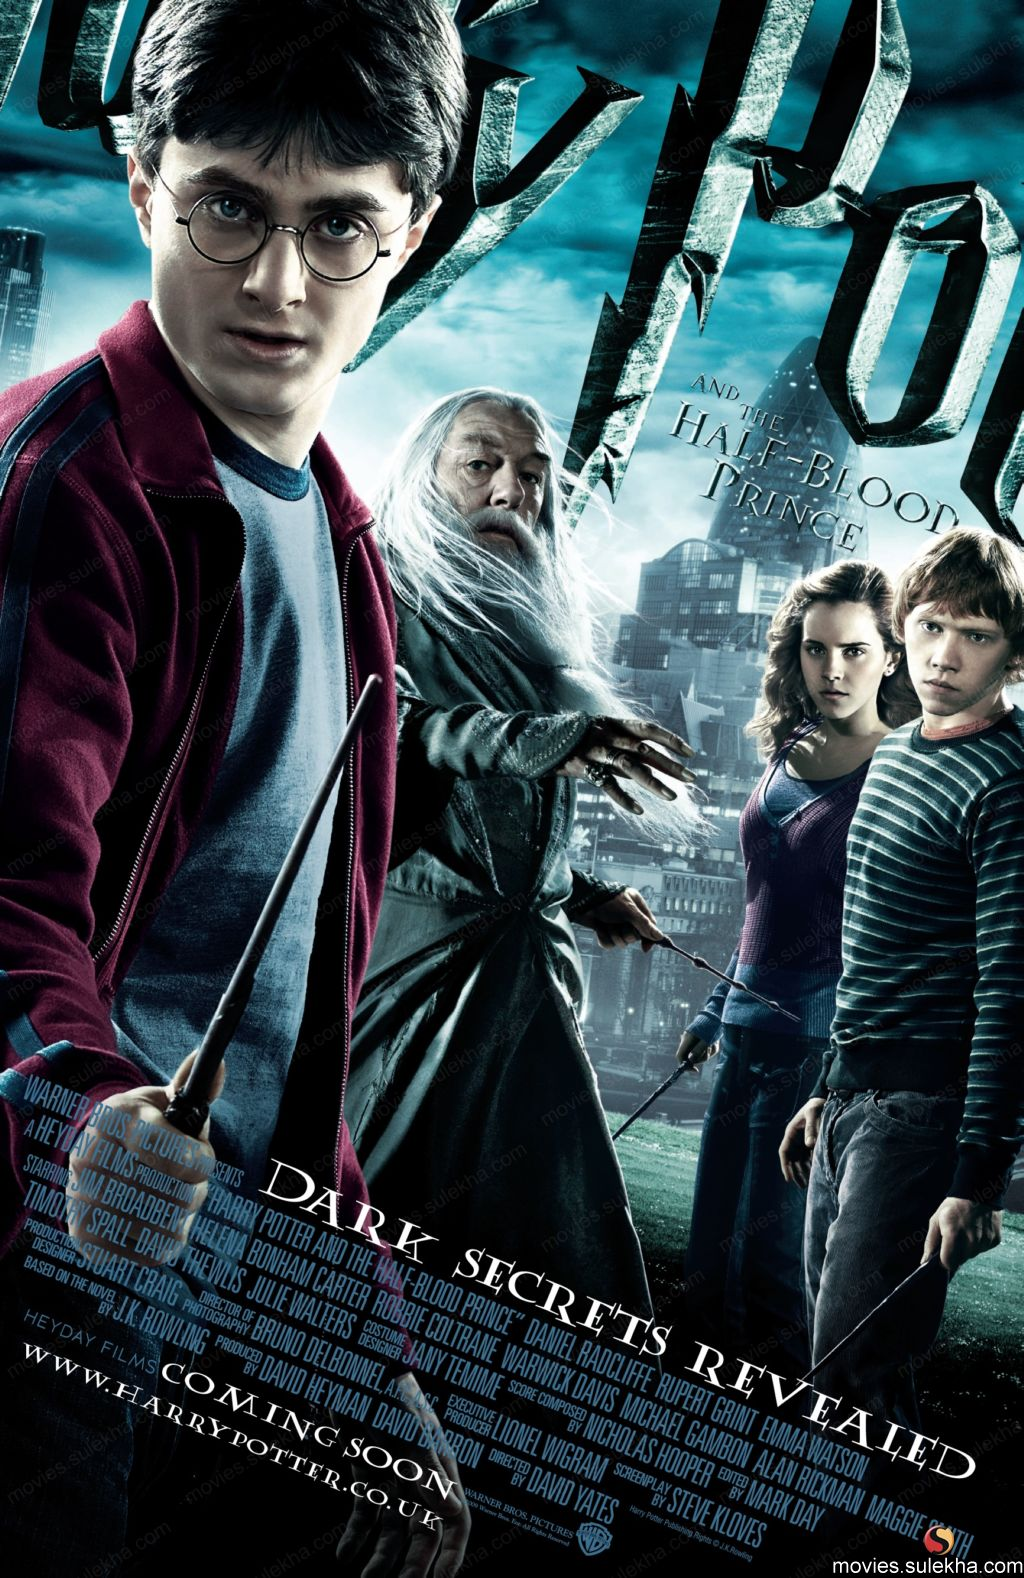 ... Potter 6 - Harry Potter and the Half-Blood Prince Subtitle Indonesia